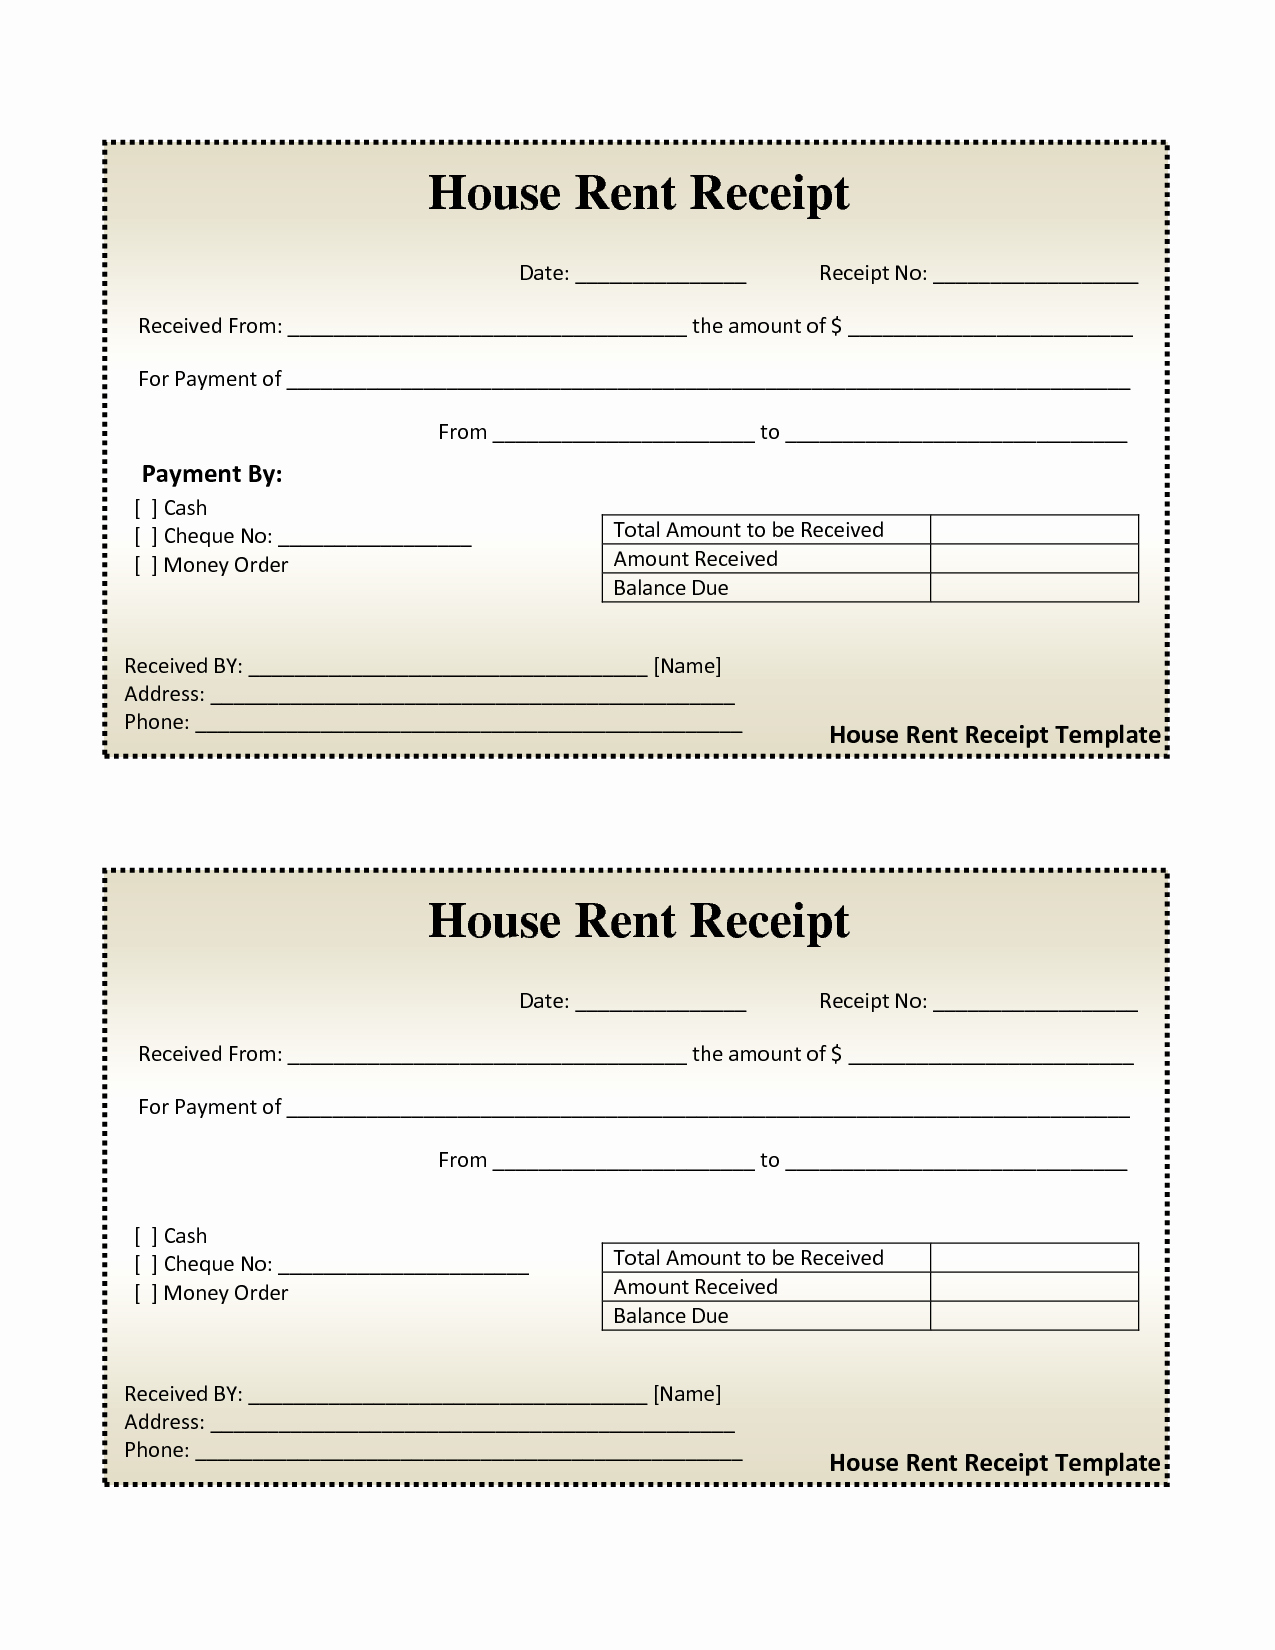 Rental Invoice Template Excel Fresh Free House Rental Invoice